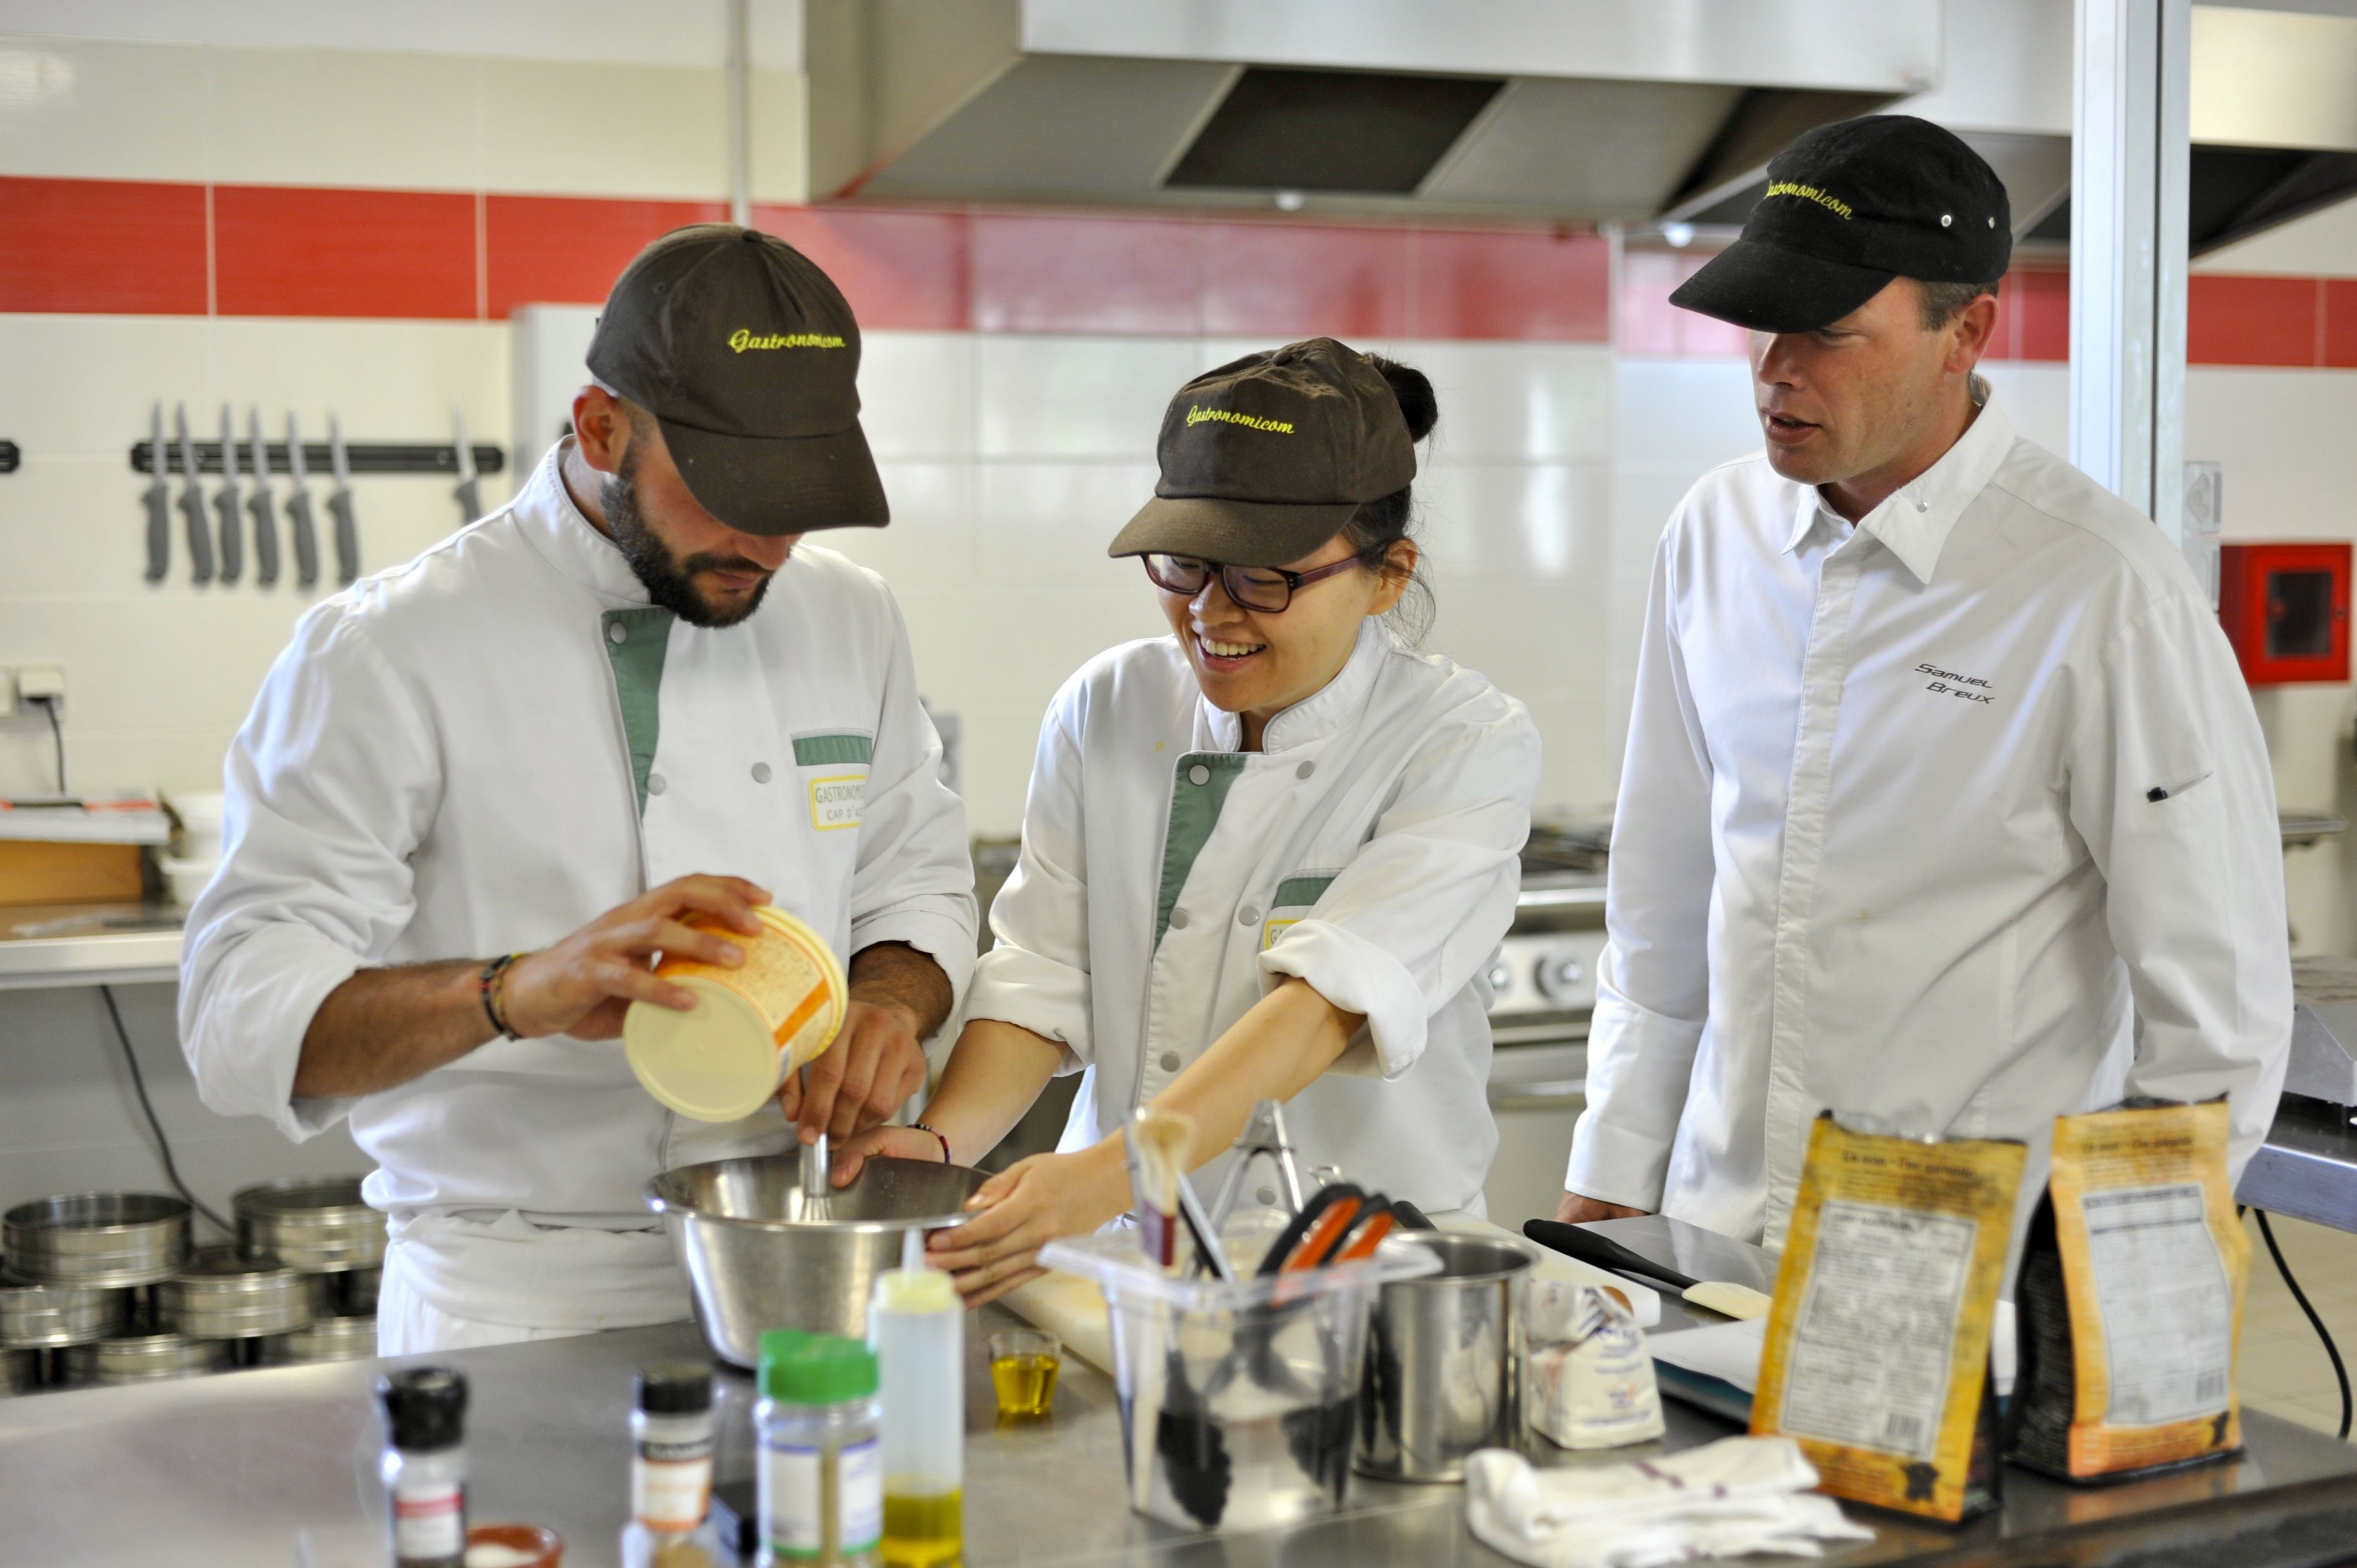 Gastronomicom : International culinary school in the south of France.